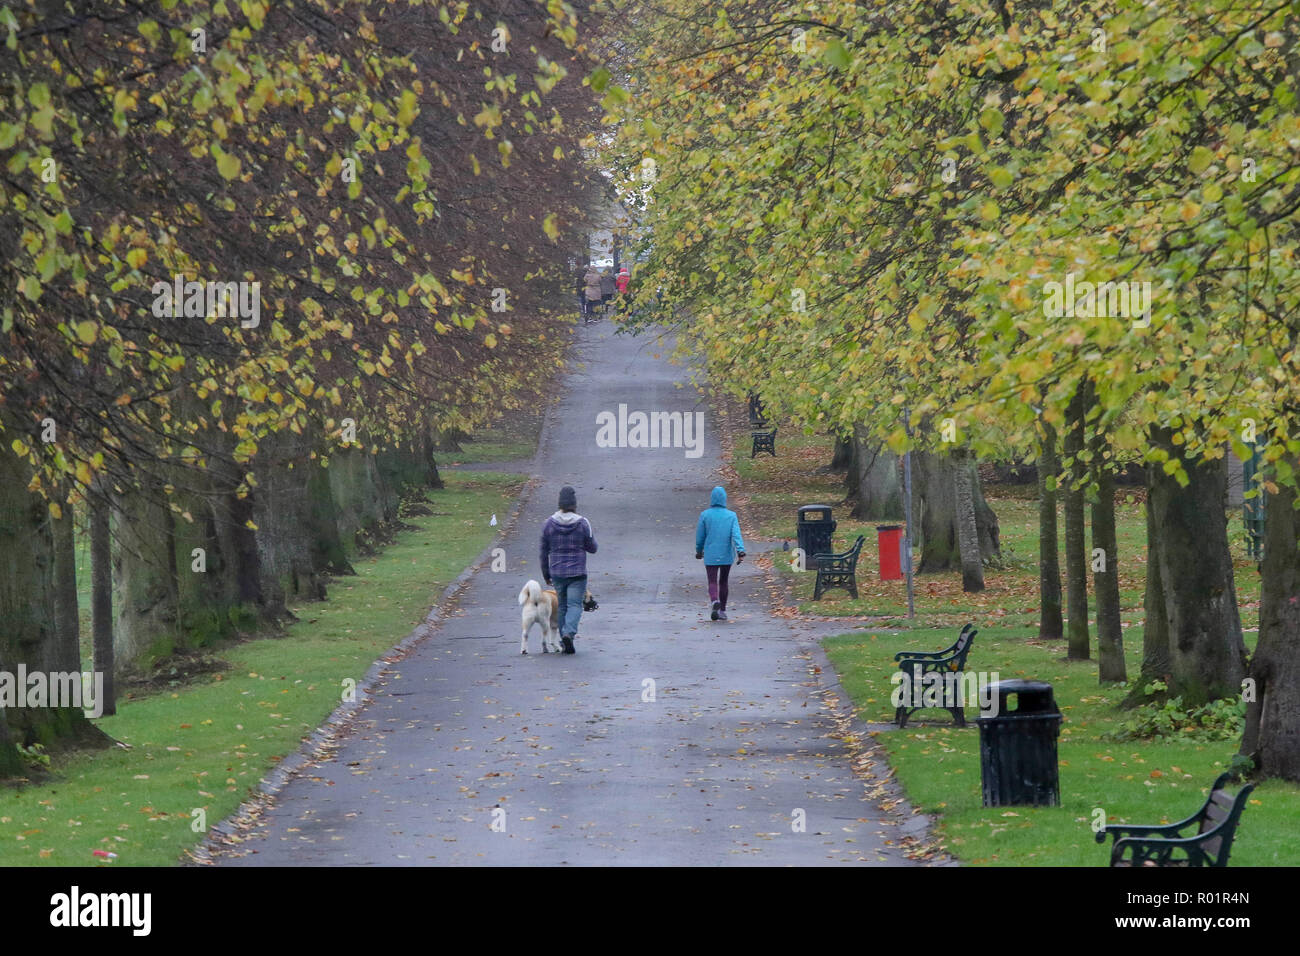 Lurgan Park, Lurgan, County Armagh, Northern Ireland. 31 October 2018. UK weather - a damp cold day in Lurgan Park with grey sky overhead until late afternoon. Credit: David Hunter/Alamy Live News. Stock Photo